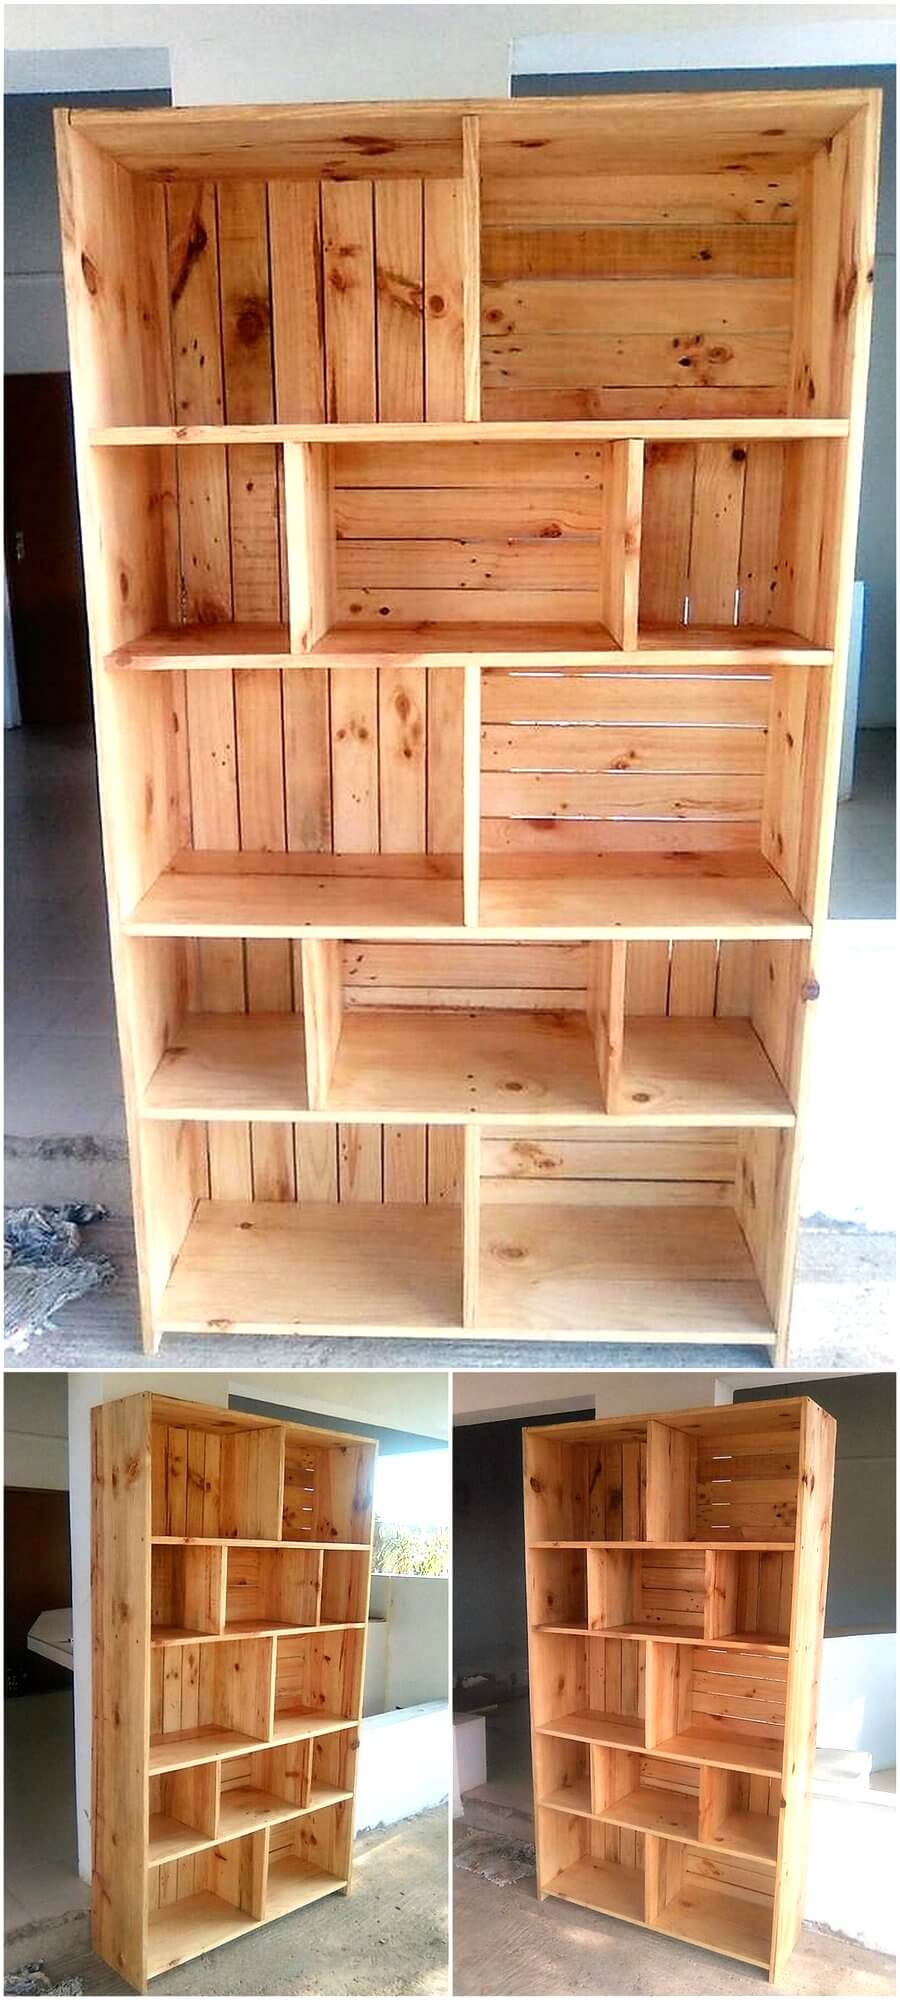 Reclaimed Pallets Wooden Made Shelving Cabinet Wood Pallet Furniture